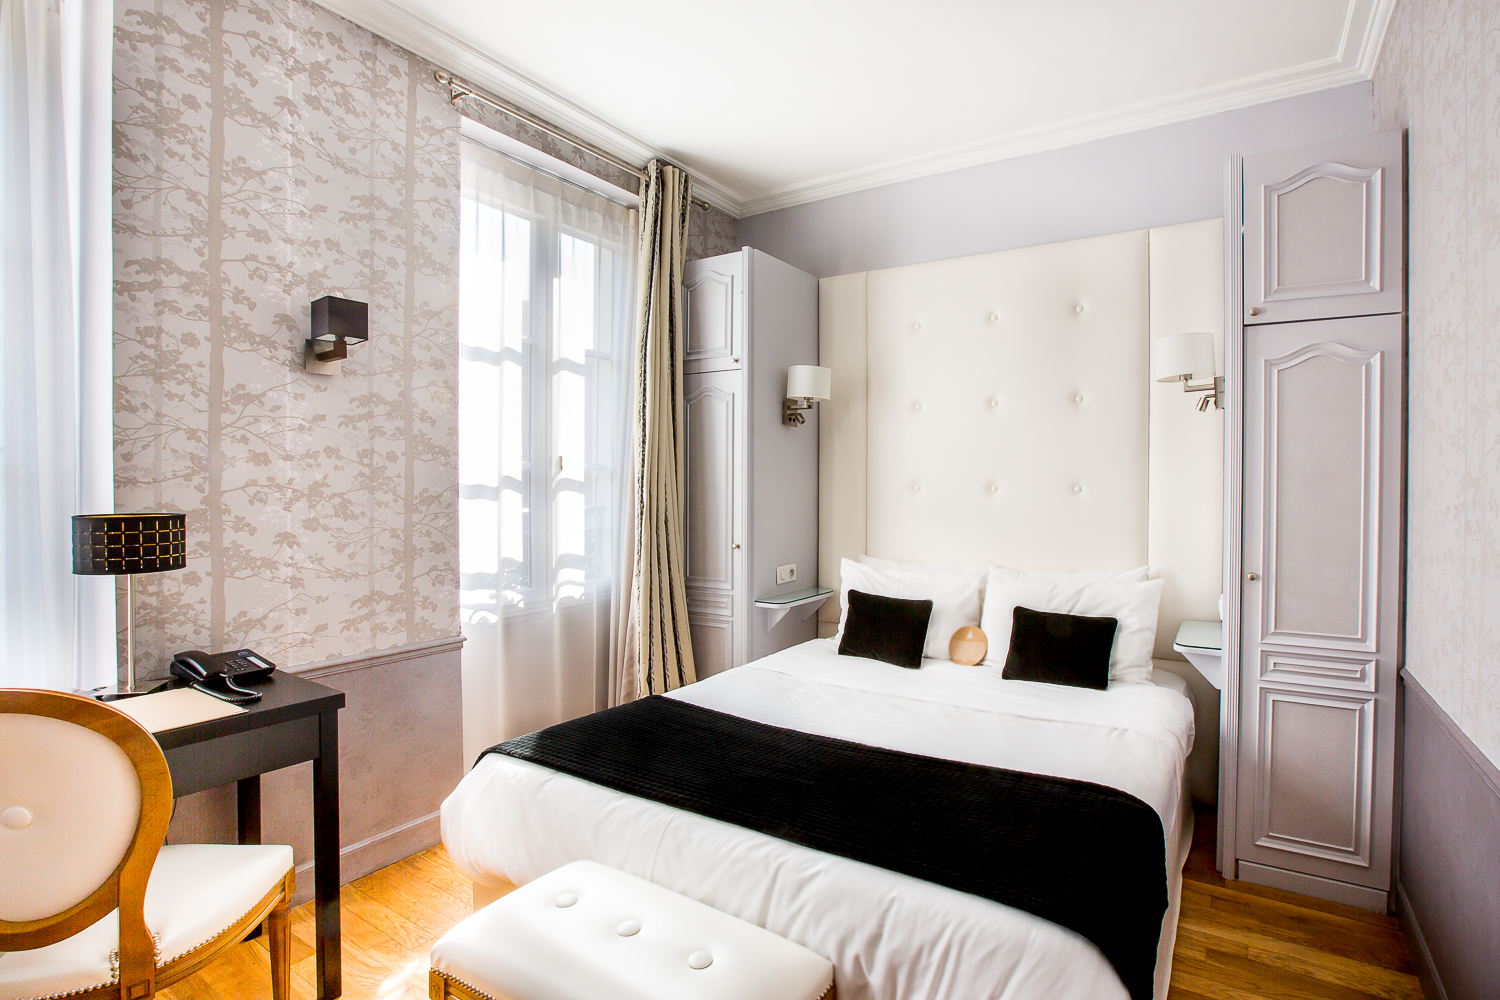 chambre familiale hotel eiffel trocadero paris. Black Bedroom Furniture Sets. Home Design Ideas